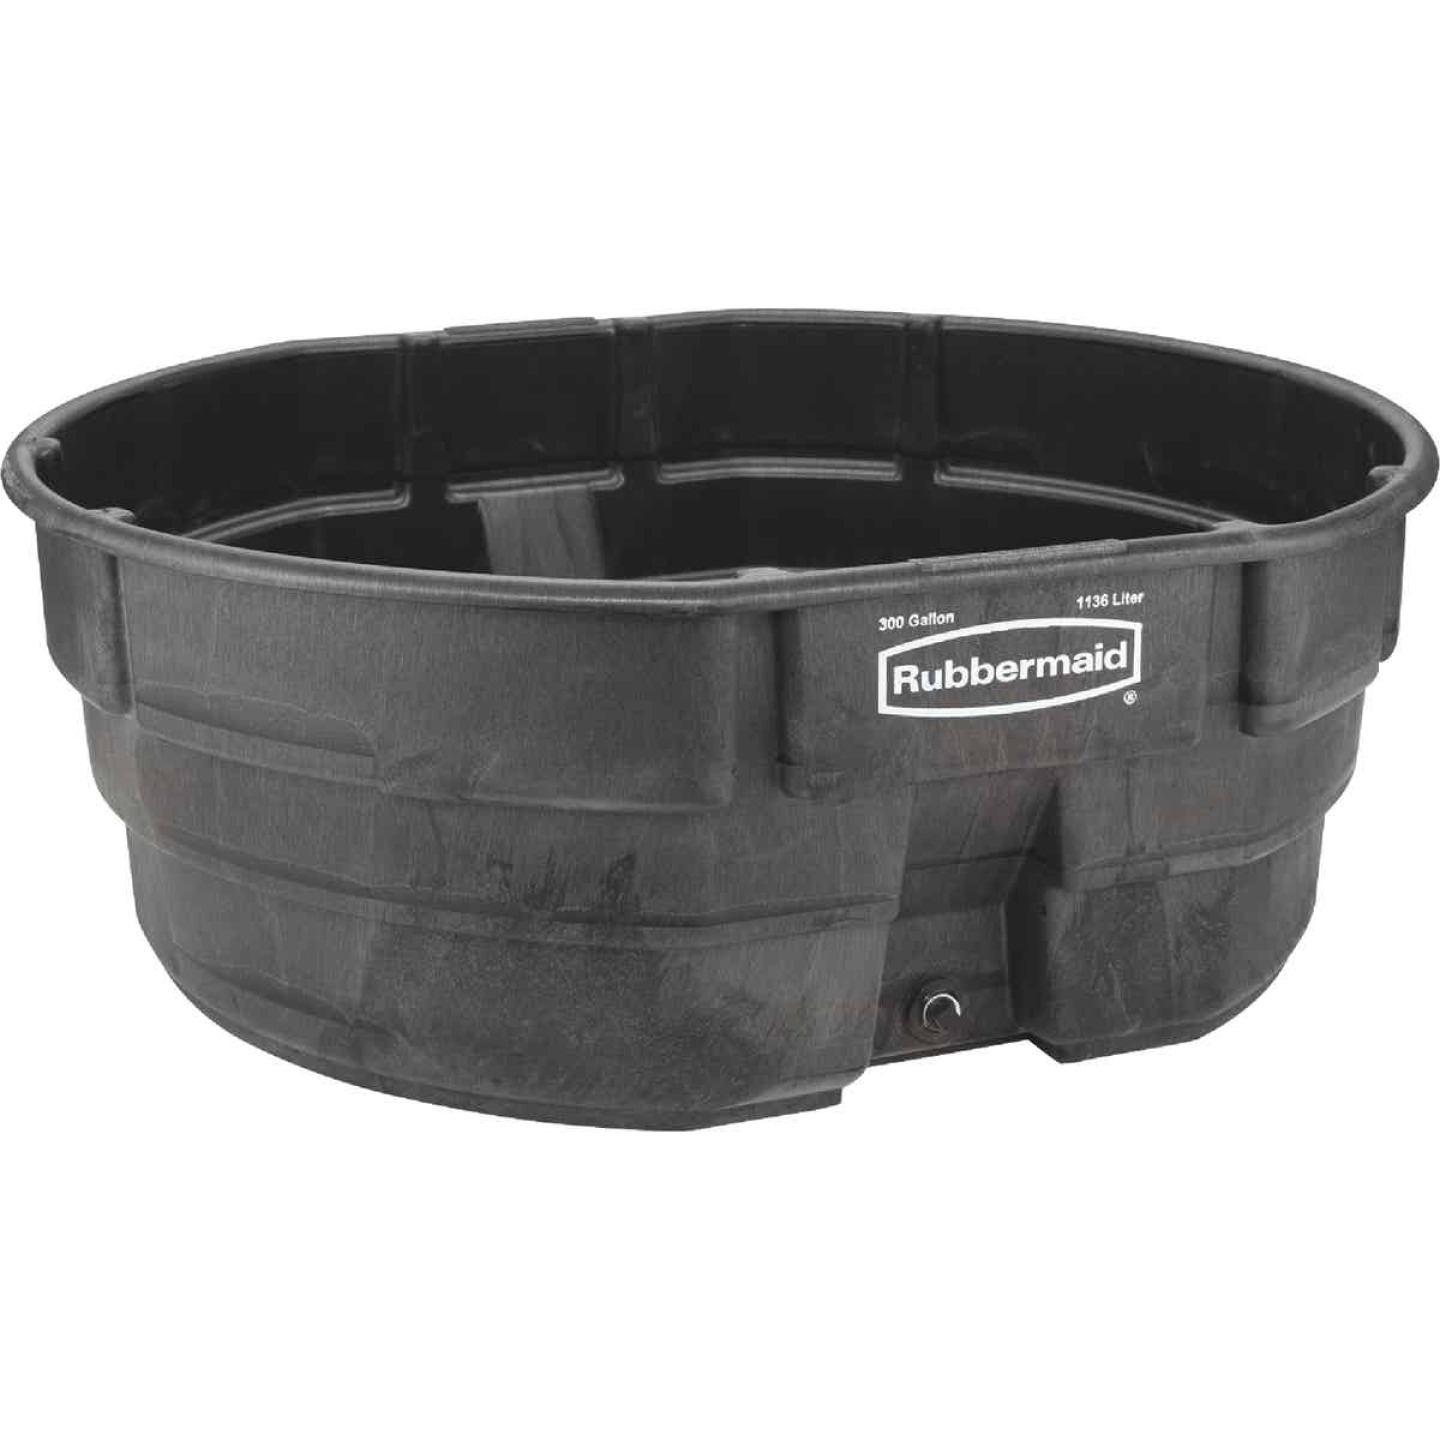 Rubbermaid 300 Gal. Structural Foam Stock Tank Image 1